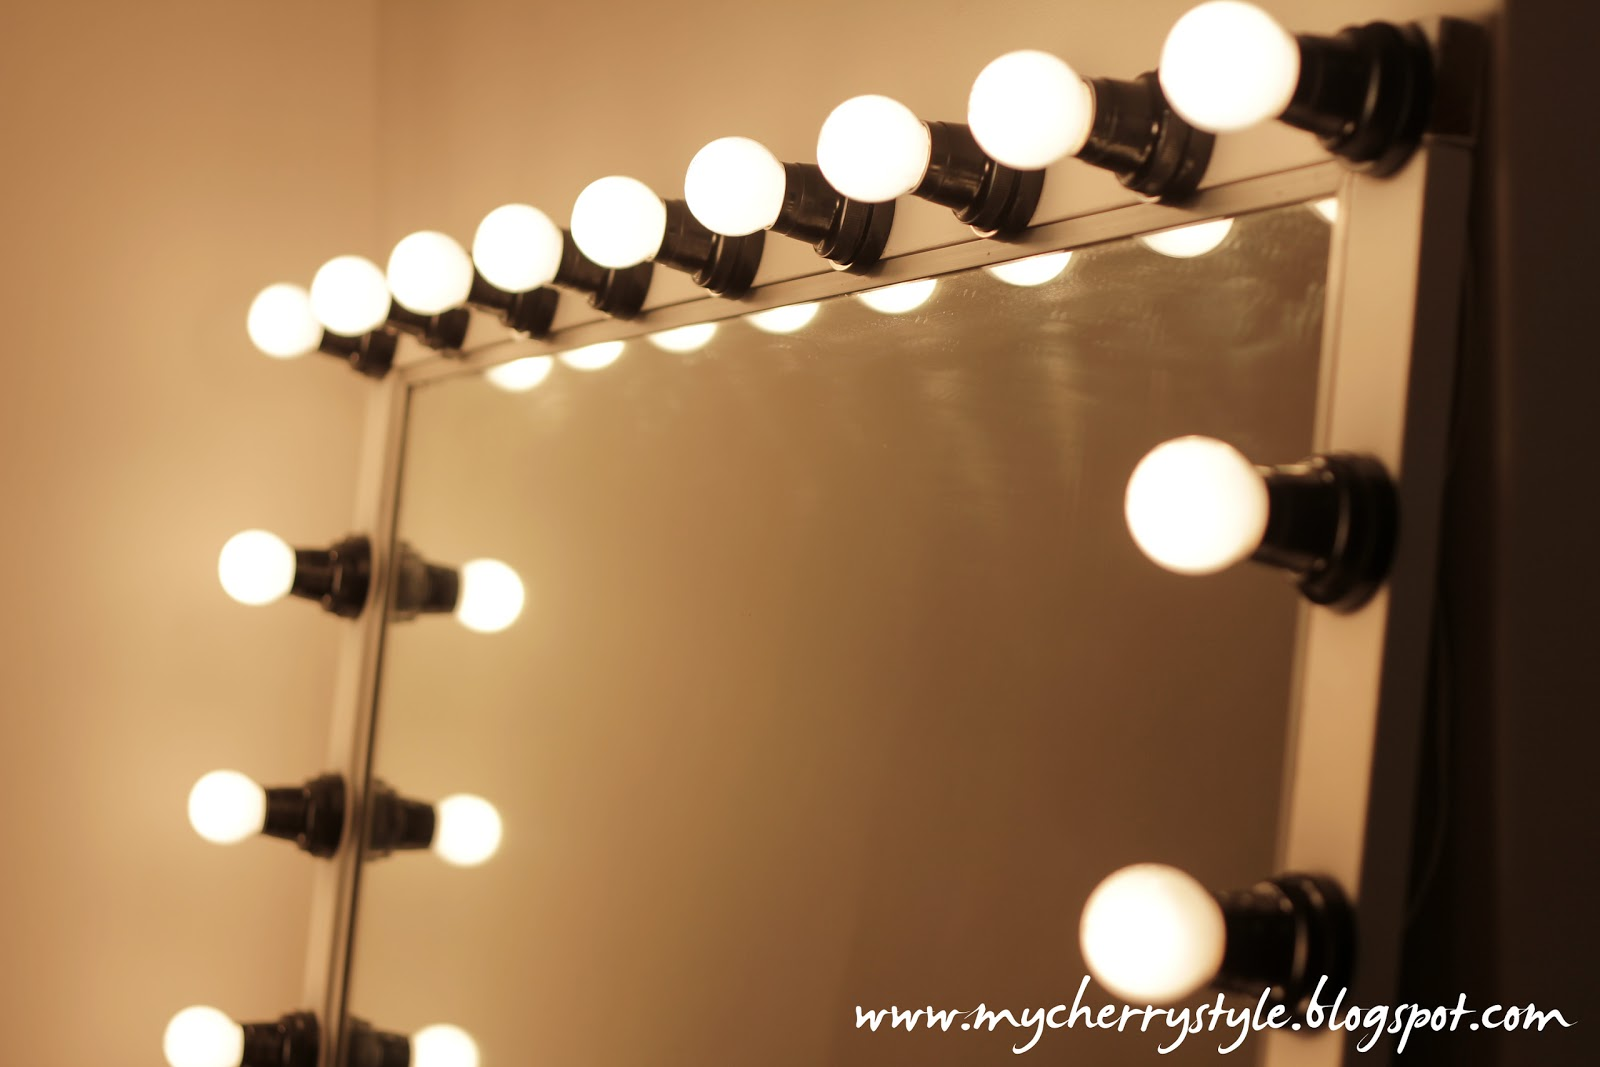 Diy hollywood style mirror with lights tutorial from scratch for diy hollywood style mirror with lights tutorial from scratch for real my cherry style mozeypictures Image collections